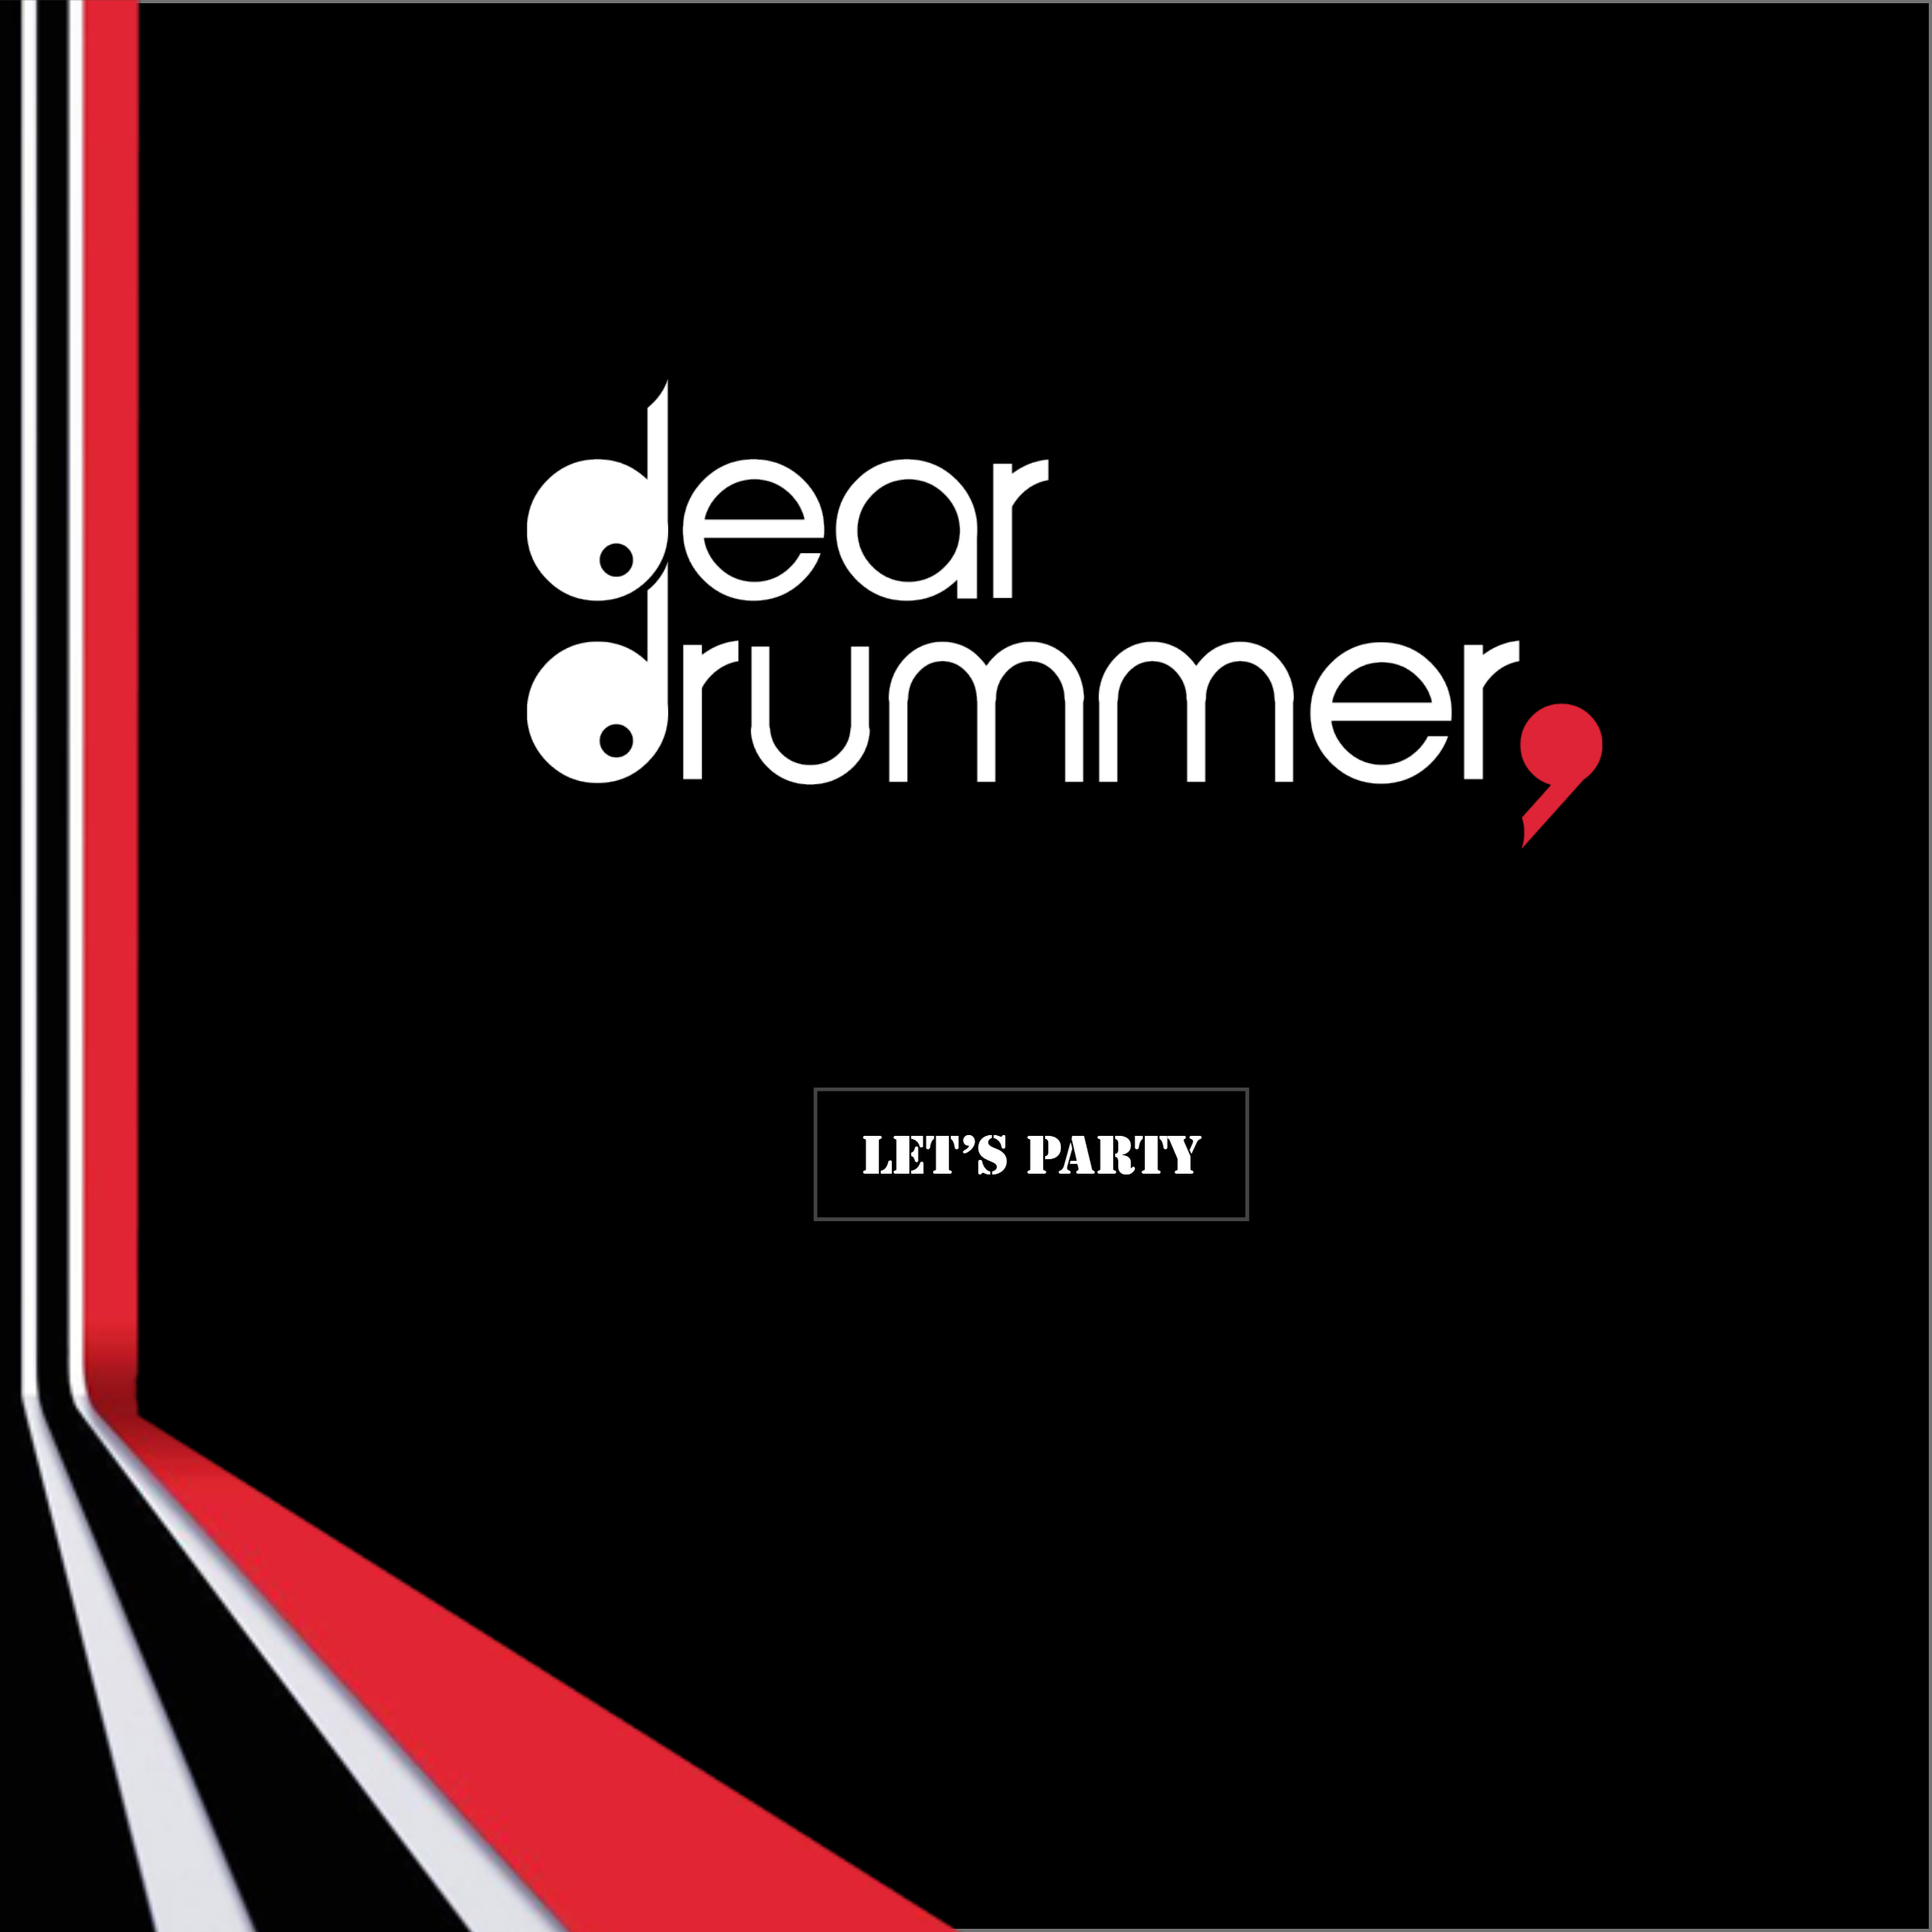 Dear Drummer - Let's Party